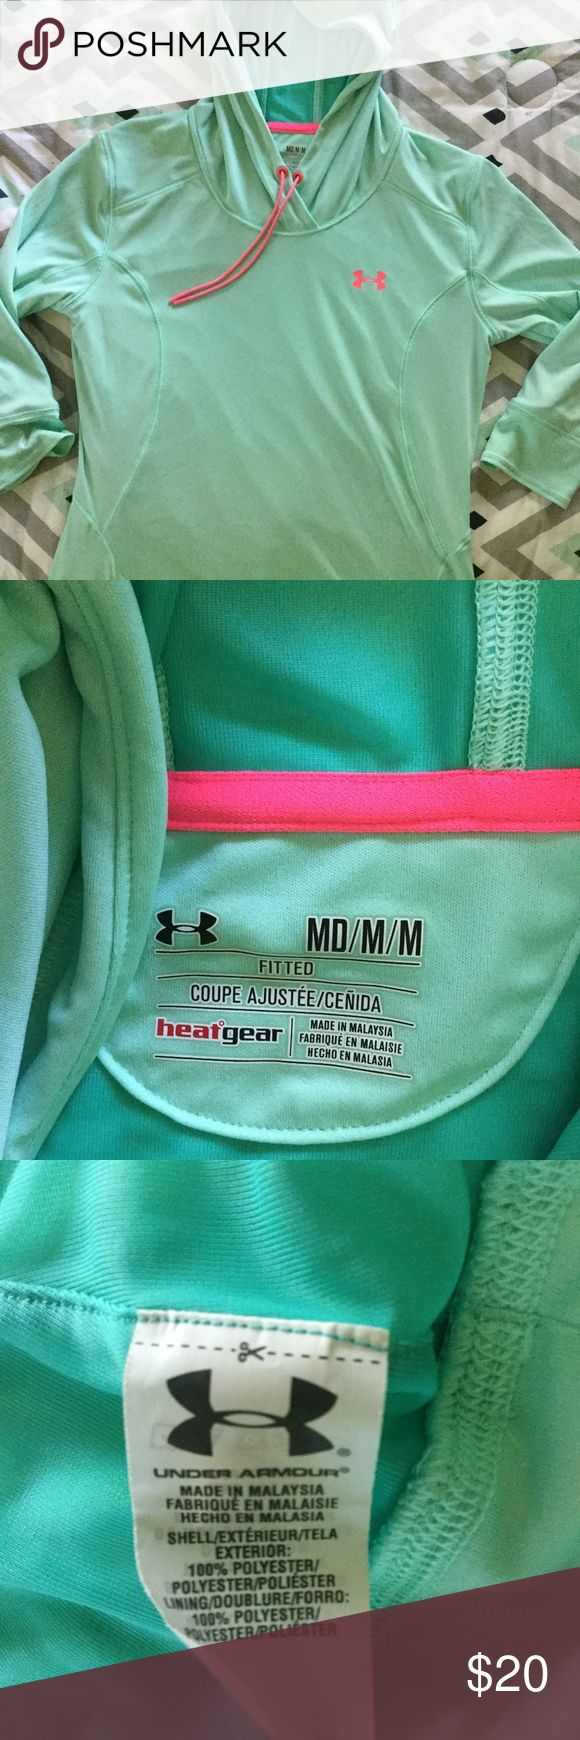 Under Armour Medium Mint Lightweight Hoodie! Fitted Medium lightweight hoodie with 3/4 sleeves! Worn a couple times in great condition. Amazing Mint green color with bright pink accents! 100% polyester. Bonus it has a HOOD! Great for cool days! Look cute while you sweat! :) Under Armour Tops Sweatshirts & Hoodies